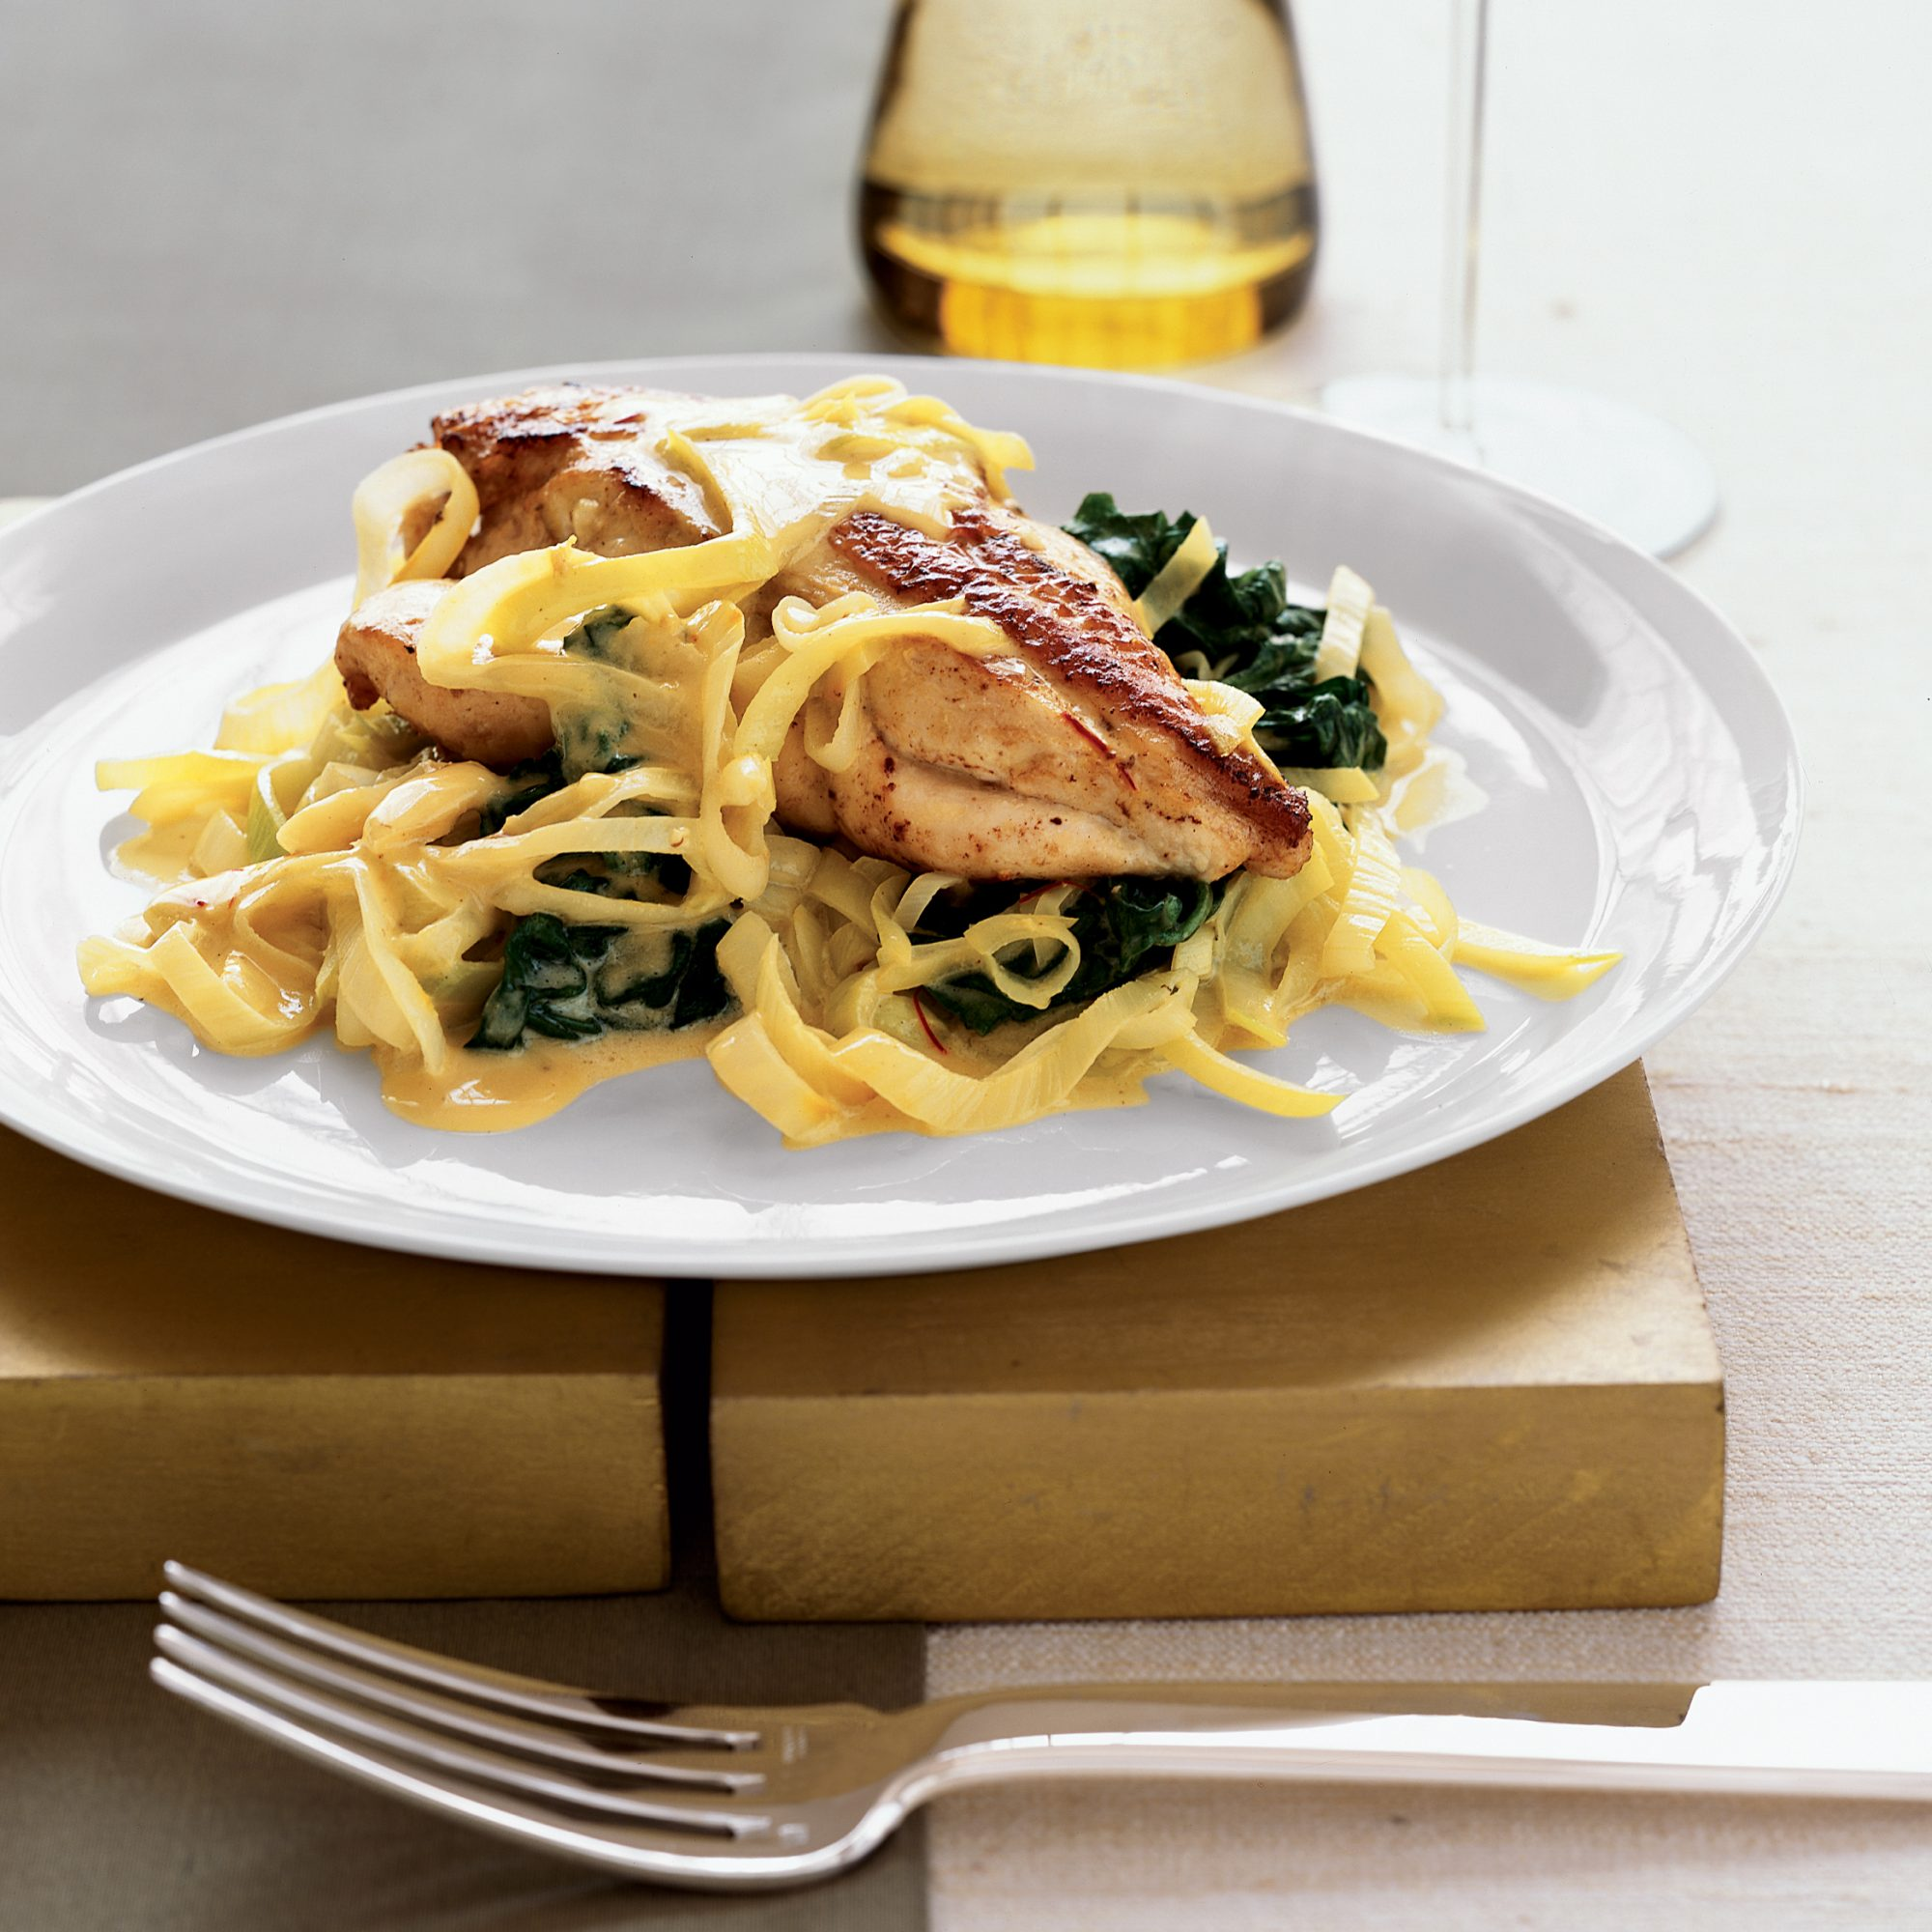 Chicken Breasts with Spinach, Leek and Saffron Sauce